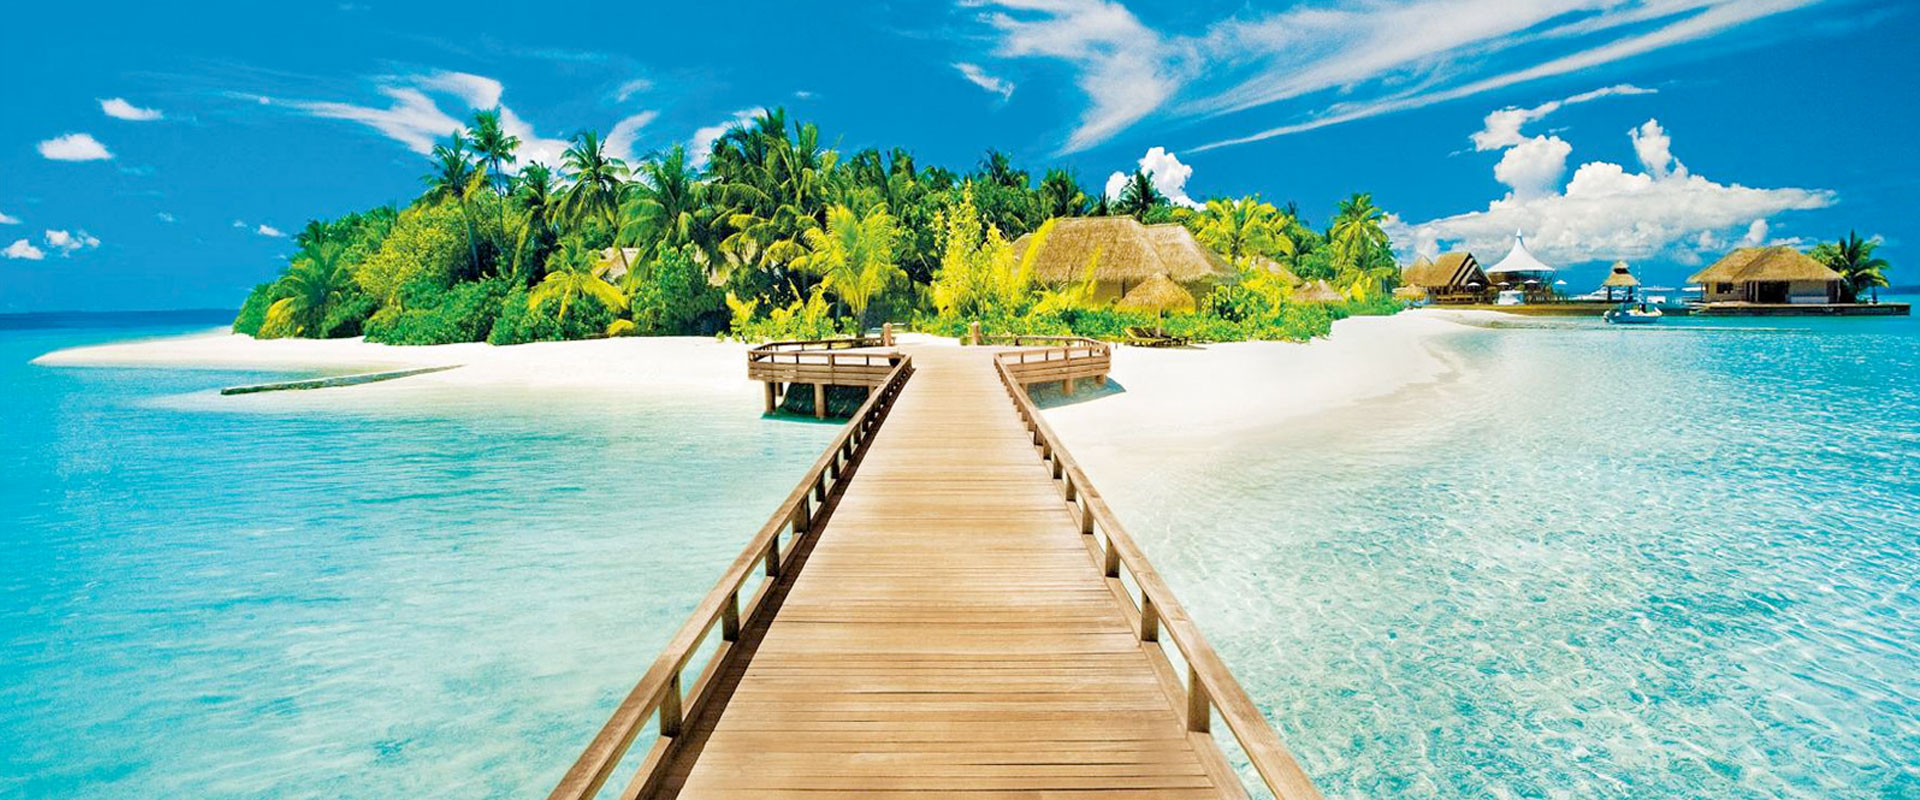 Estate 2021 Settimana a TH Ortano Village All Inclusive blog line york mi maldive